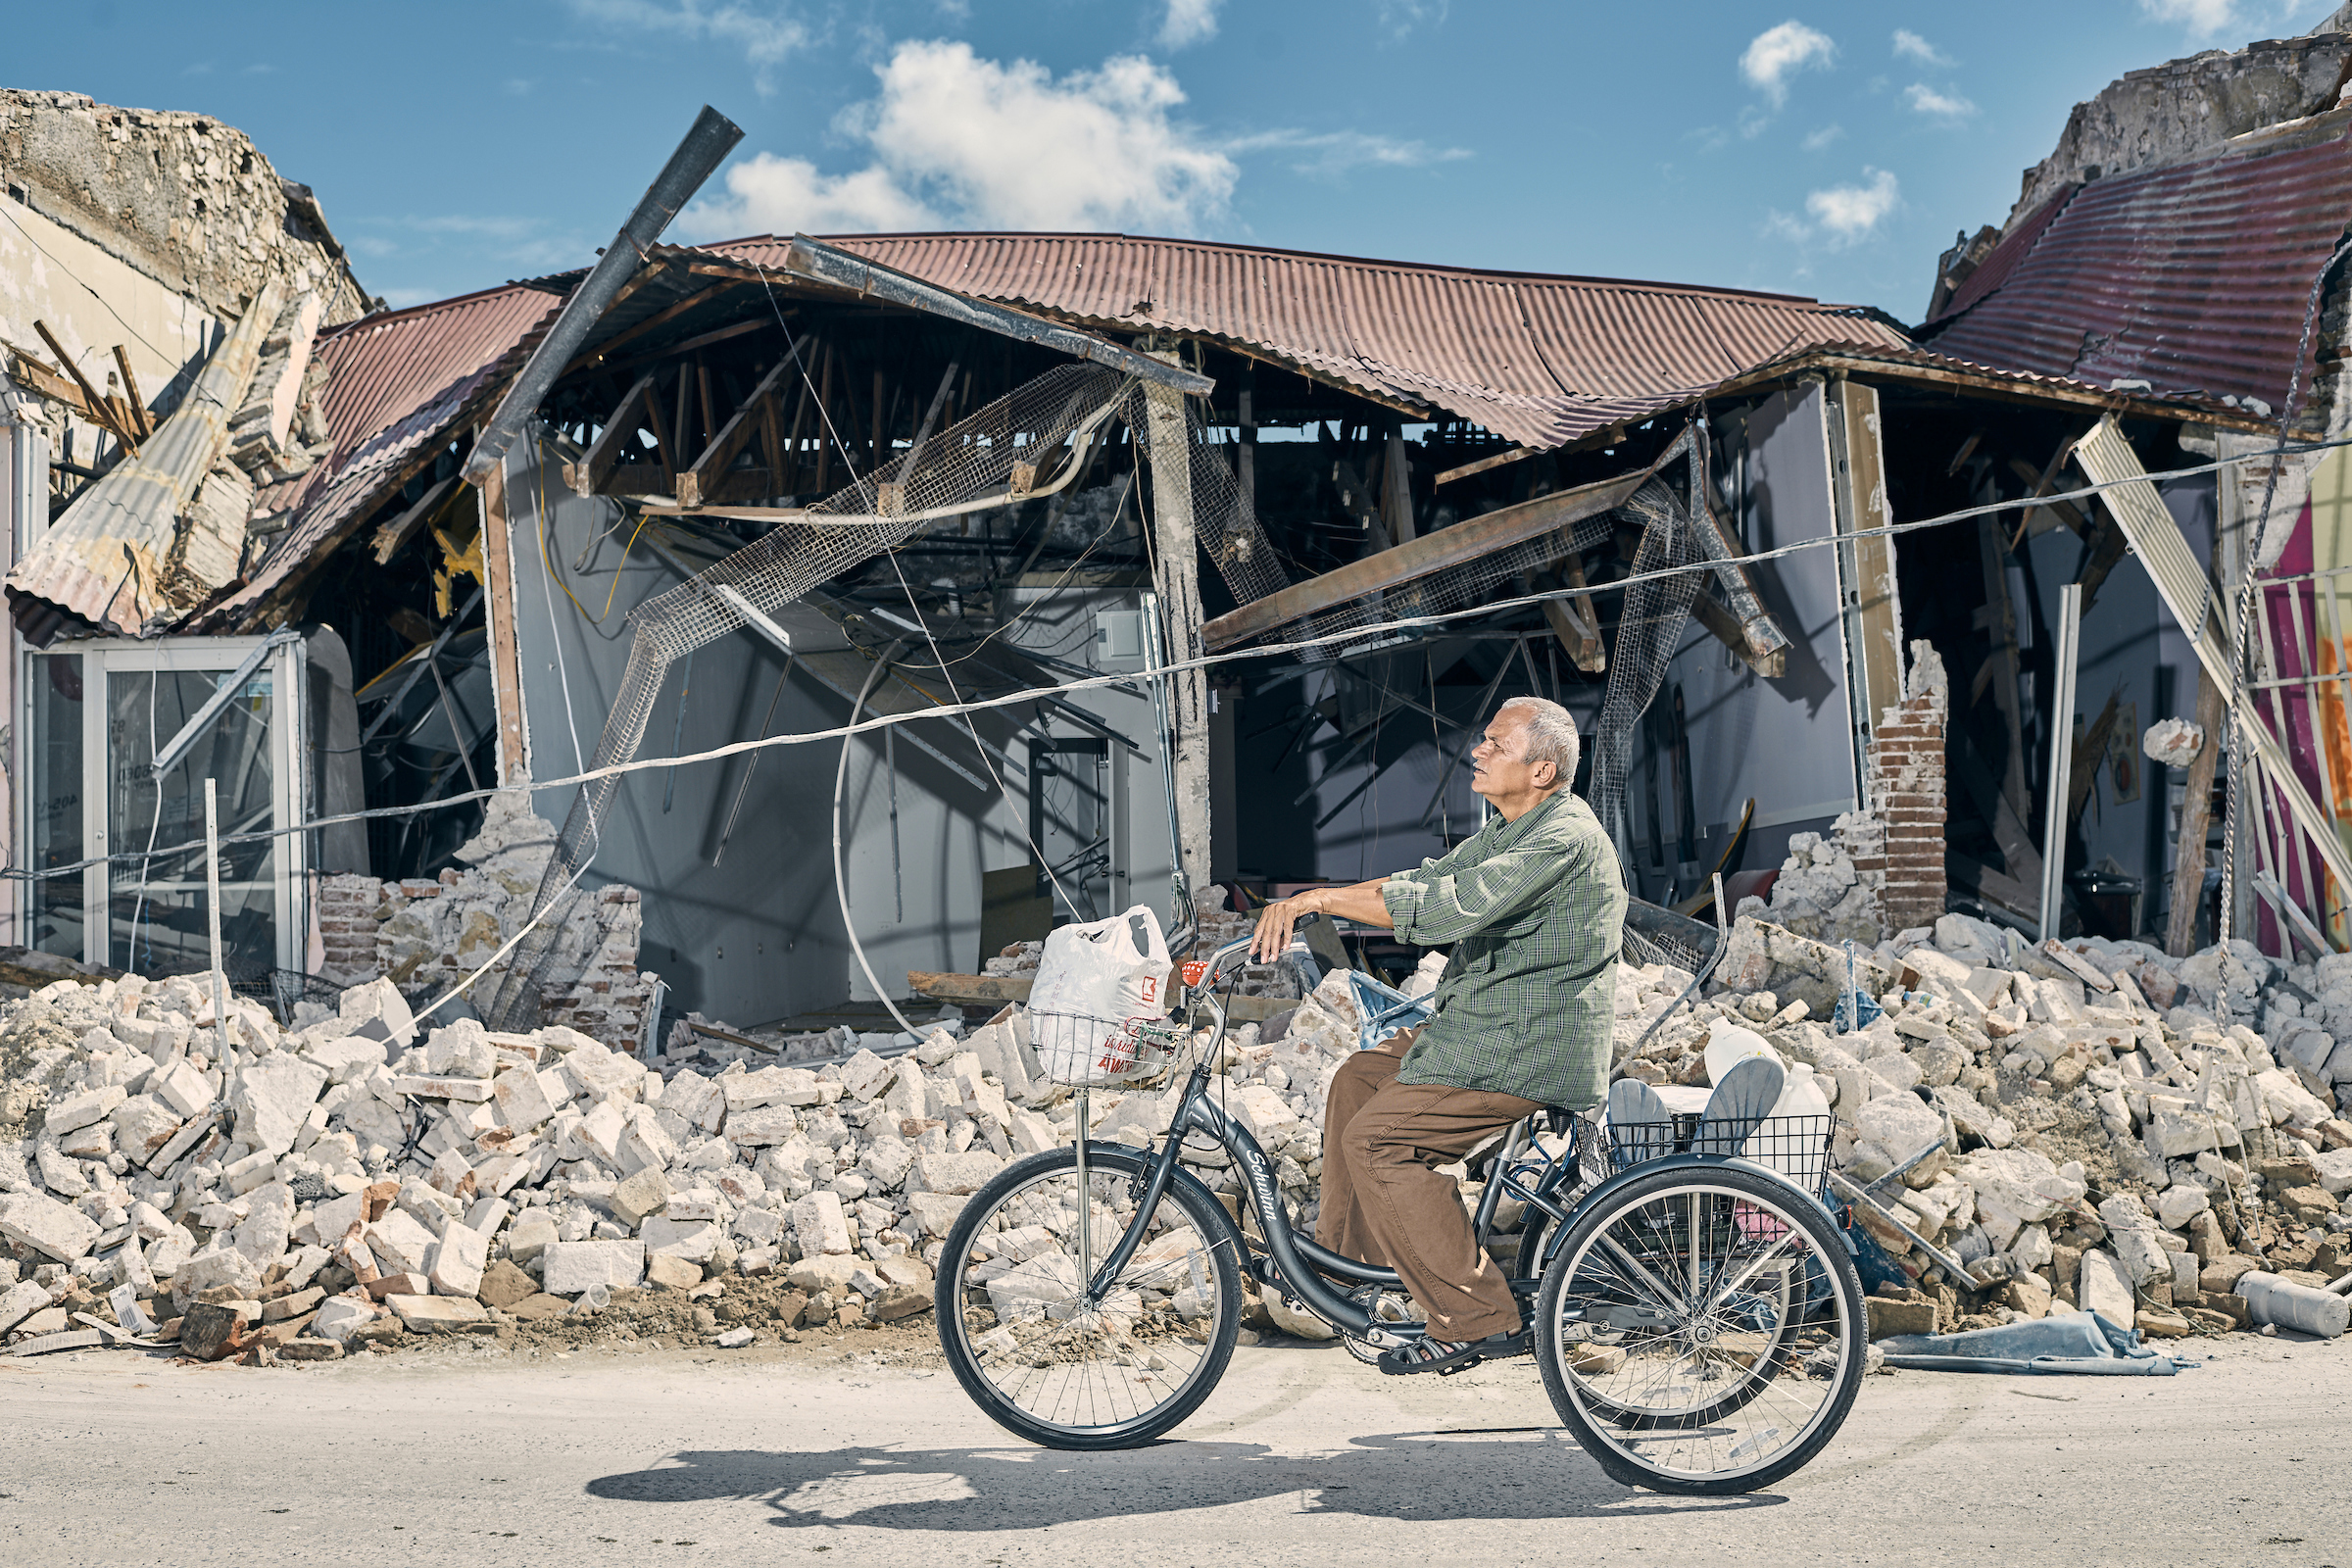 A man rides his tricycle in front of earthquake-destroyed buildings in the town center of Guanica, Puerto Rico, on Jan. 8.